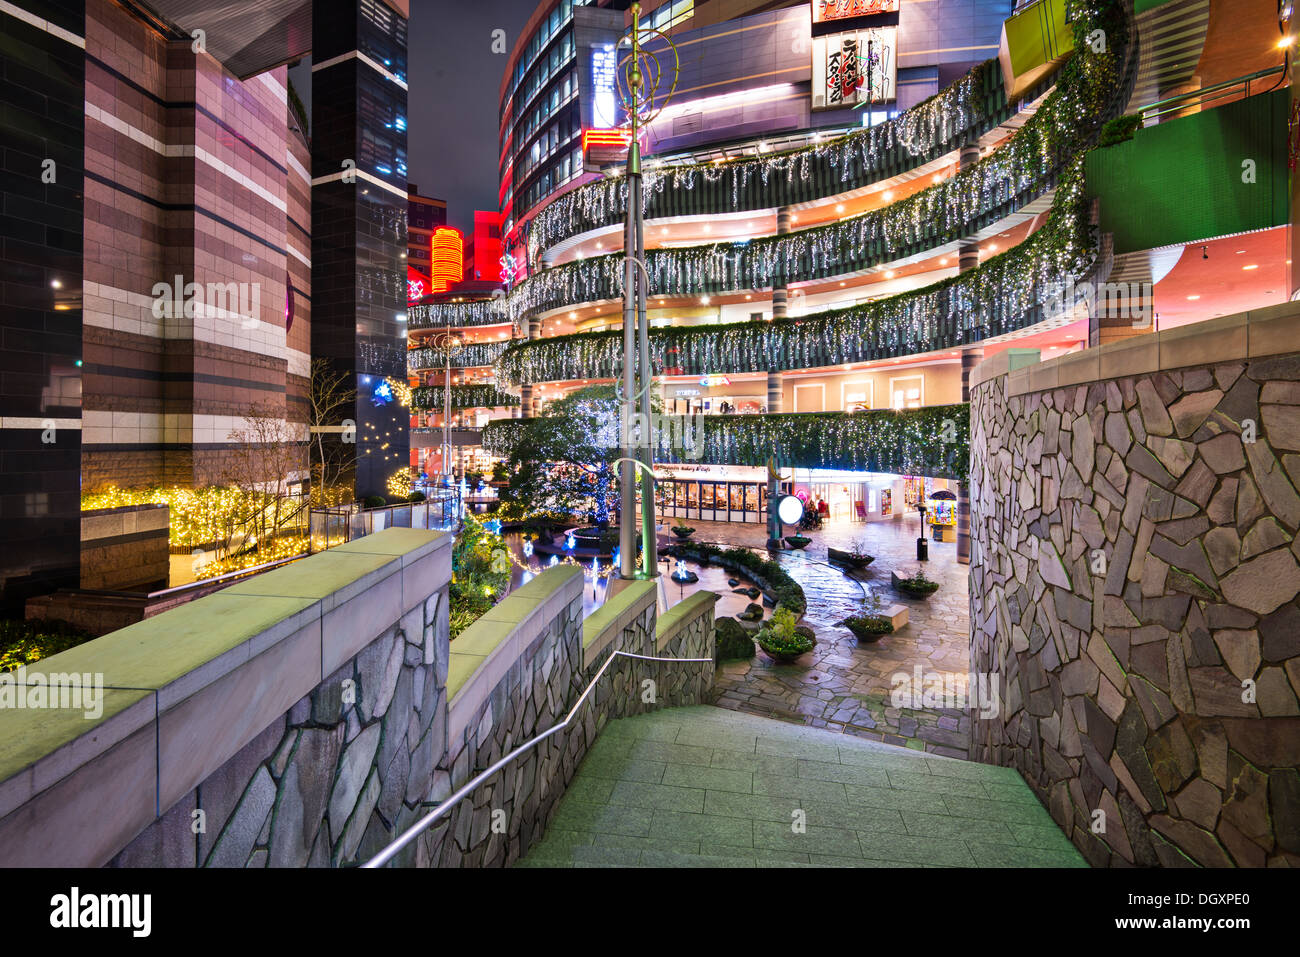 Canal City in Fukuoka, Japan. - Stock Image